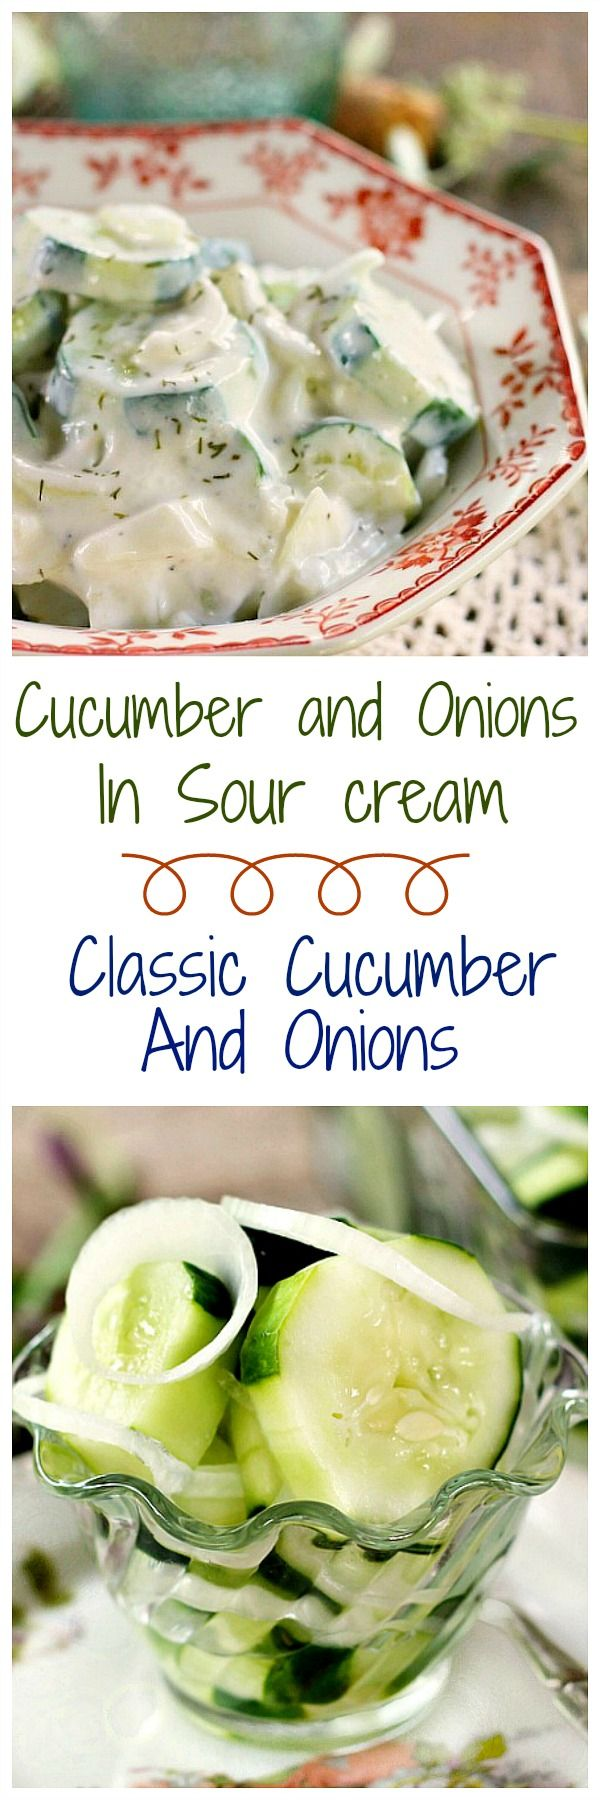 Cucumbers and Onions...2 different and delicious recipes. Cucumber and Onions in Sour Cream and Classic Cucumber and Onions. There's room in your fridge for both versions when the heat of summer begs for something cool and delicious